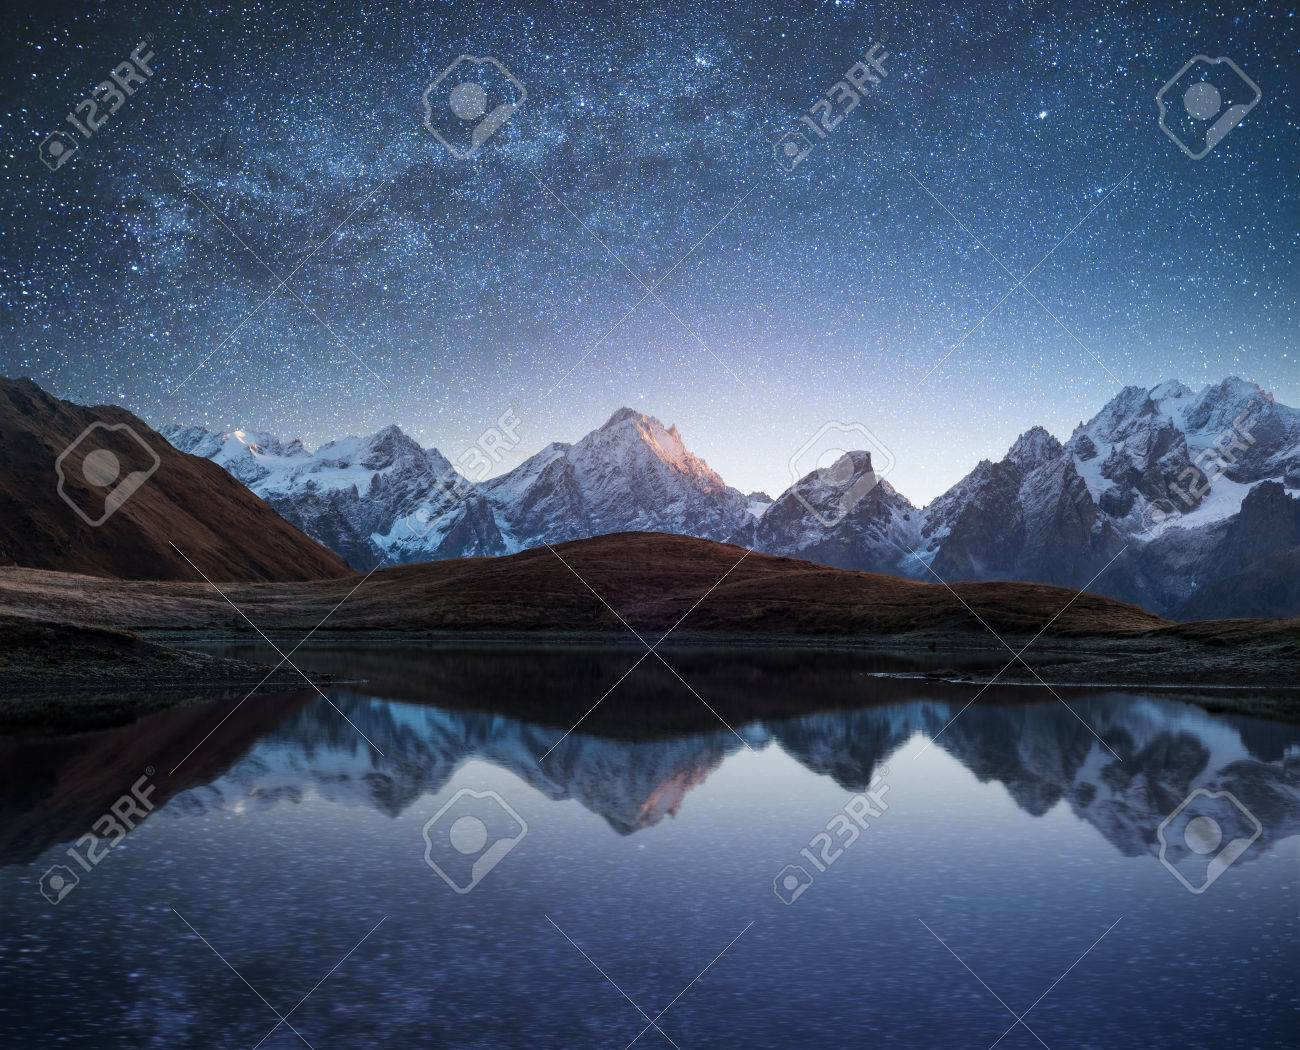 Night sky with stars and the Milky Way over a mountain lake. Collage of two frames. Art processing photos Banque d'images - 61561054